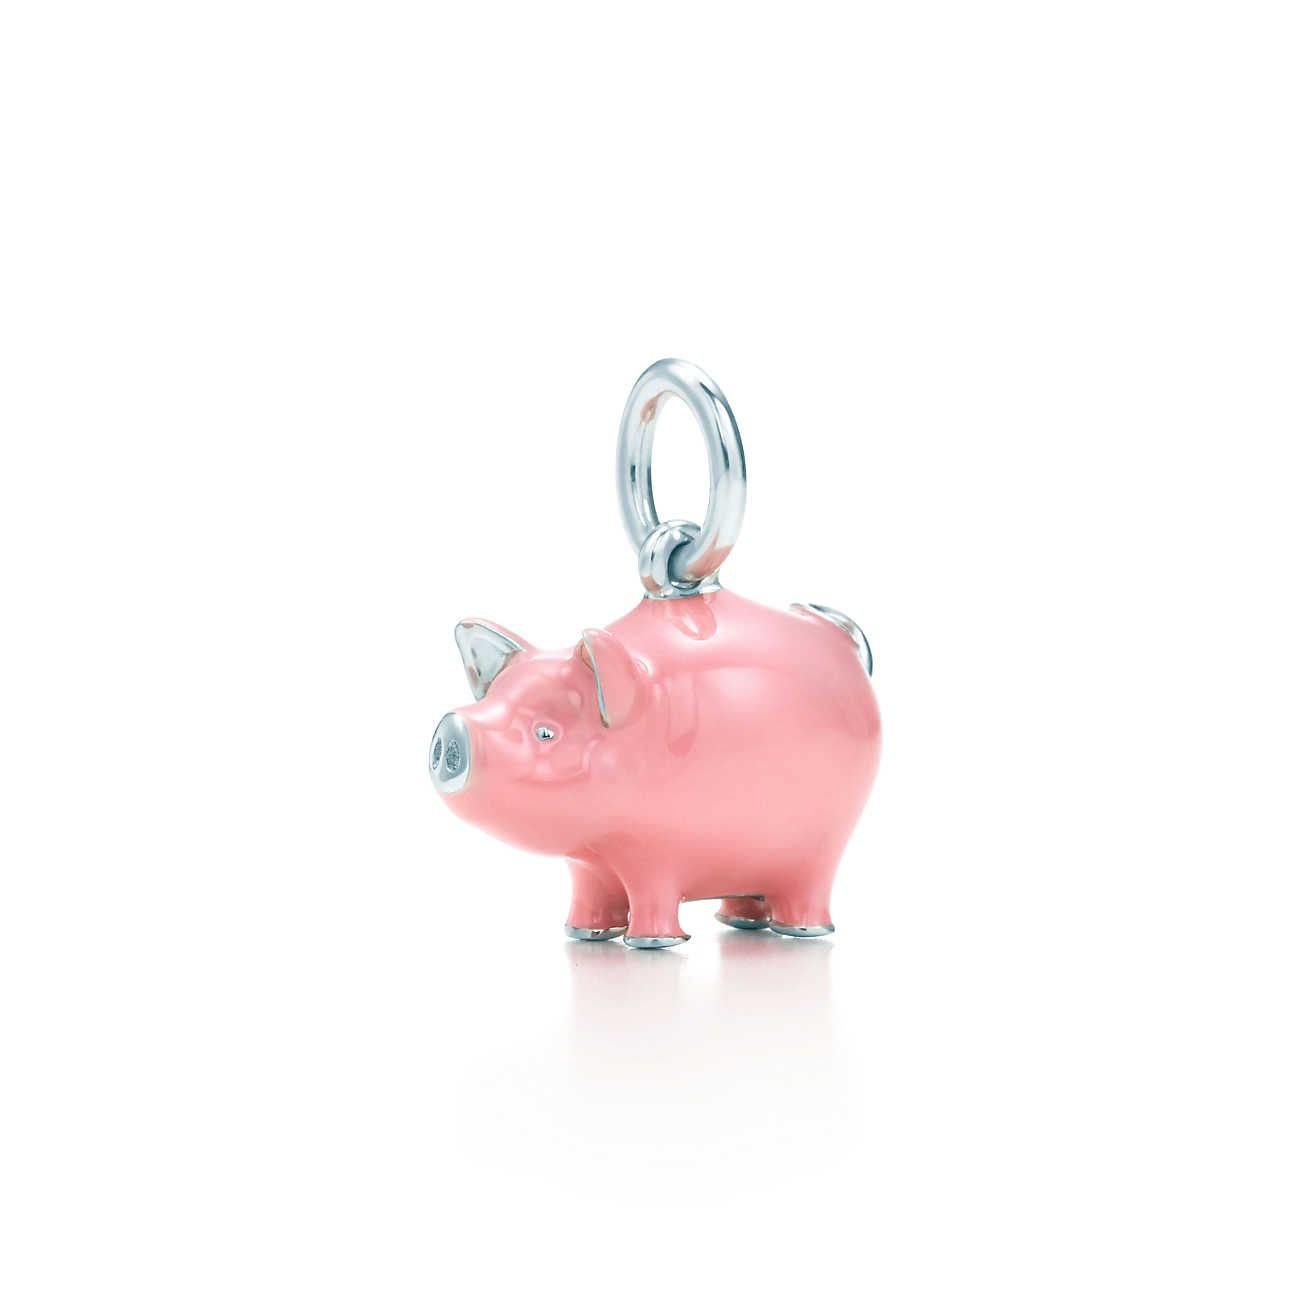 af0b71bcb Piggy Charm in 2019 | Family | Tiffany jewelry, Jewelry, Outfits